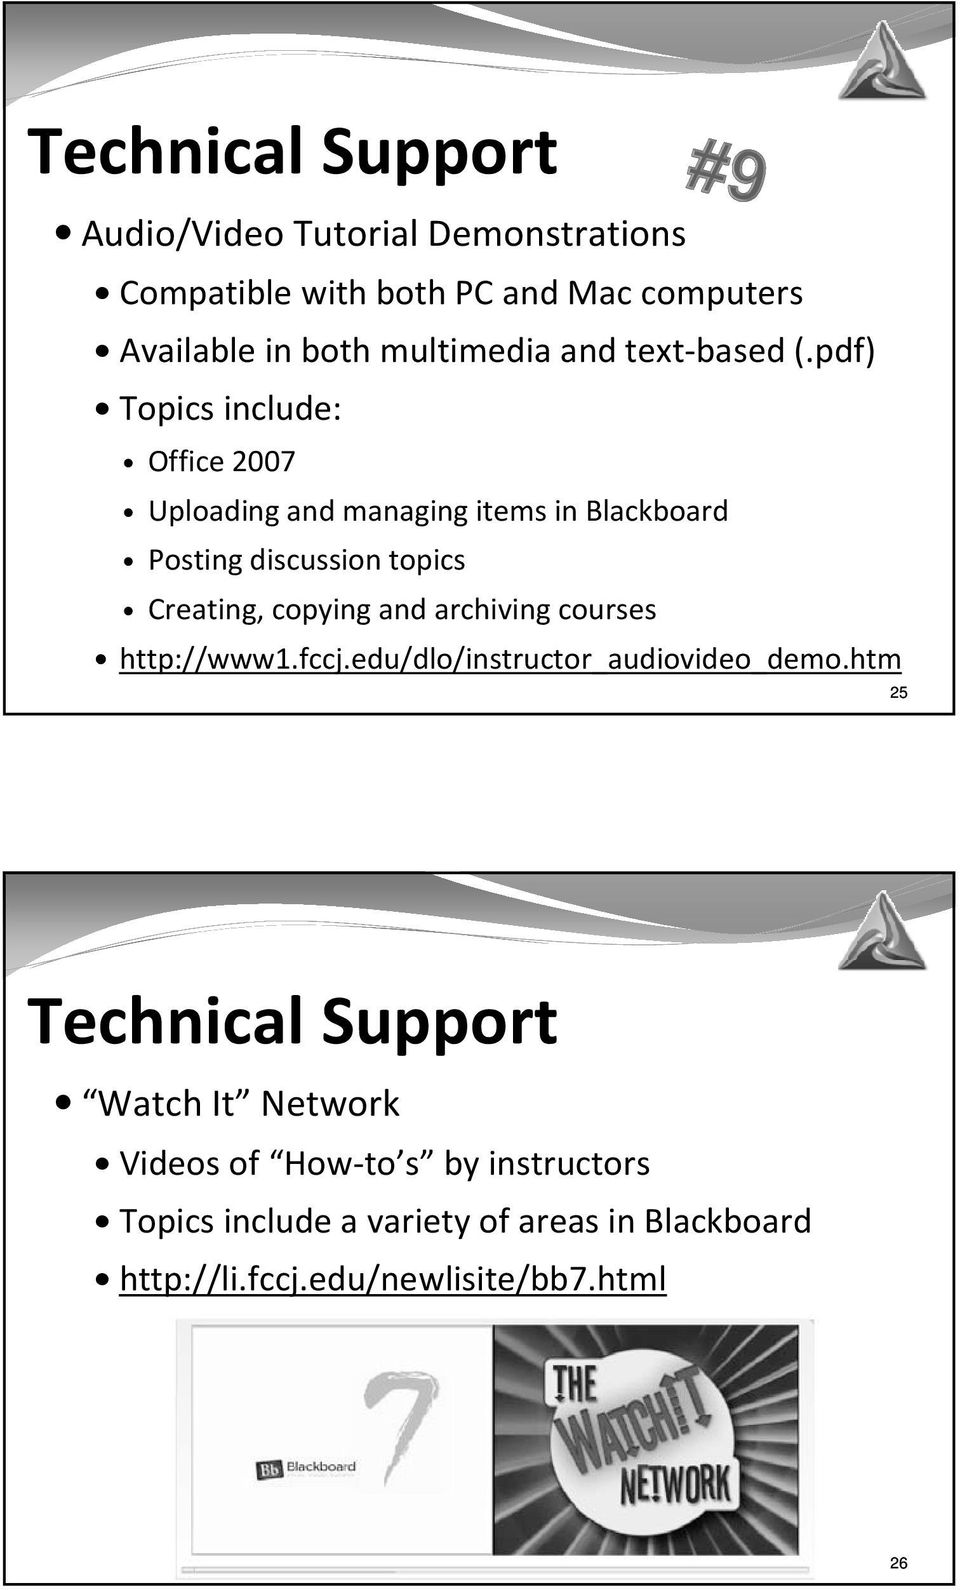 pdf) Topics include: Office 2007 Uploading and managing items in Blackboard Posting discussion topics Creating, copying and